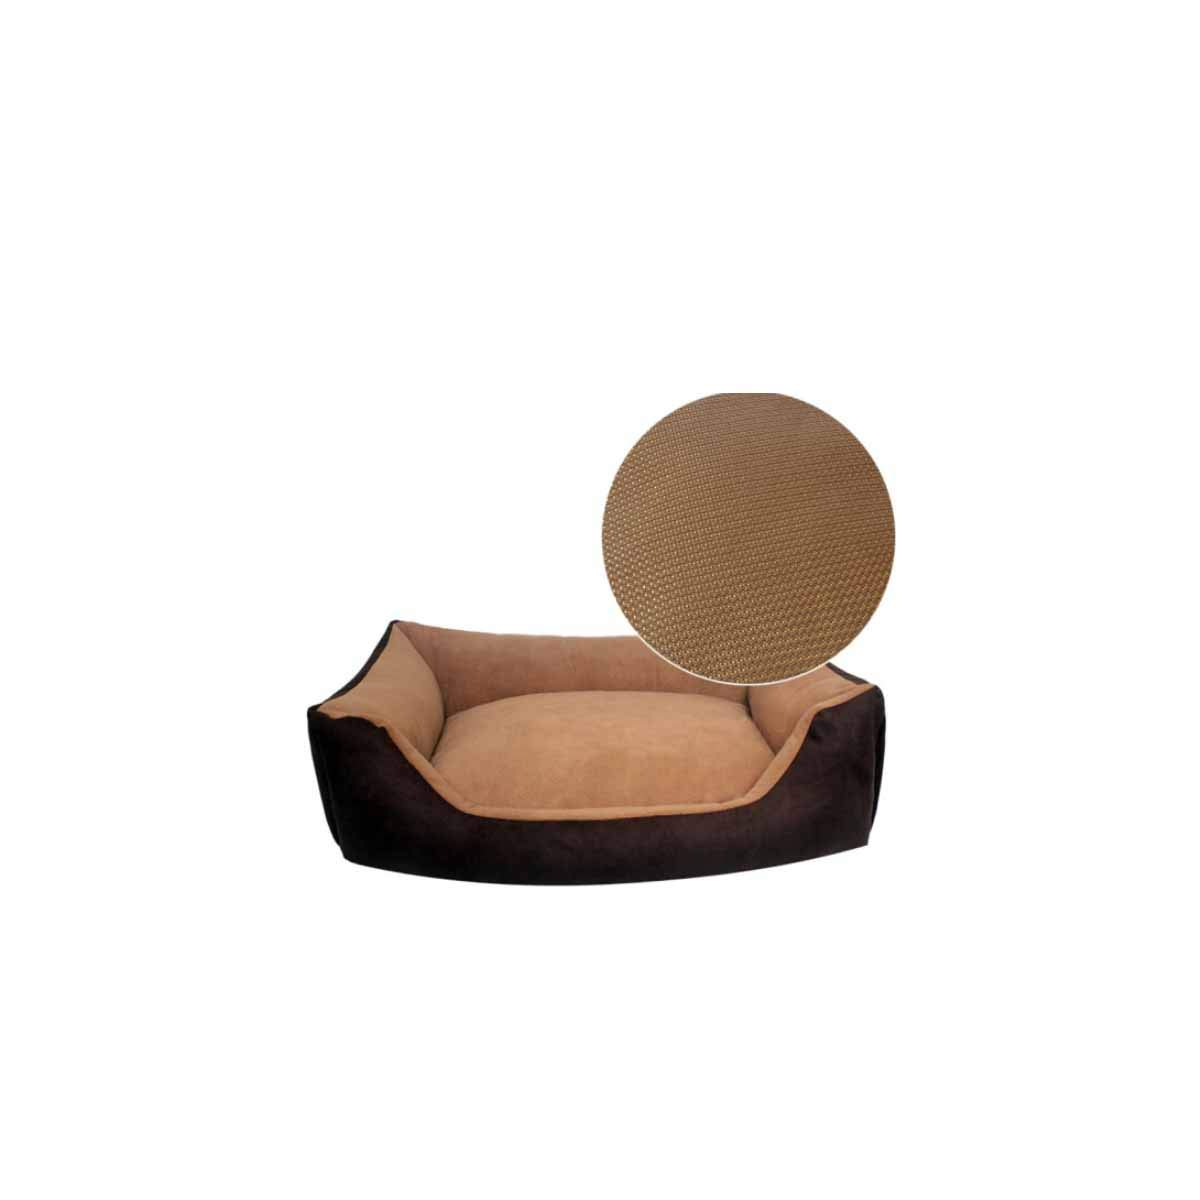 Beige L Beige L Kennel, Medium-Sized Winter, Washable in Winter, Medium-Sized Dog golden Retriever Kennel, Large-Scale Dog General-Purpose Four Seasons, Extra Large Labrador Indoor Cushion